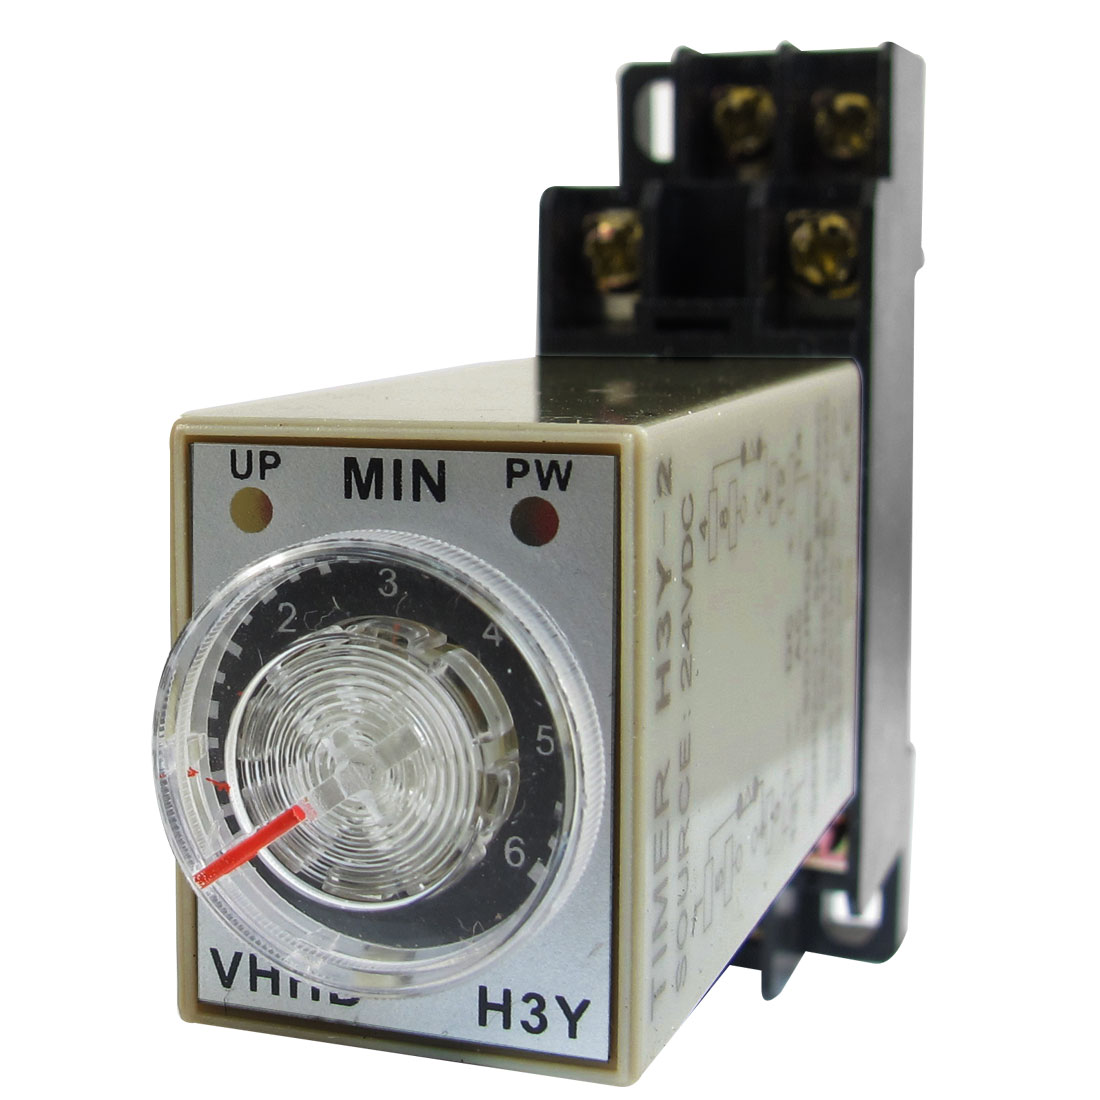 H3Y-2 On/Up LED Indicator Power Timing Relay 8 Pin 0-6m 6 Min 24V DC + Base